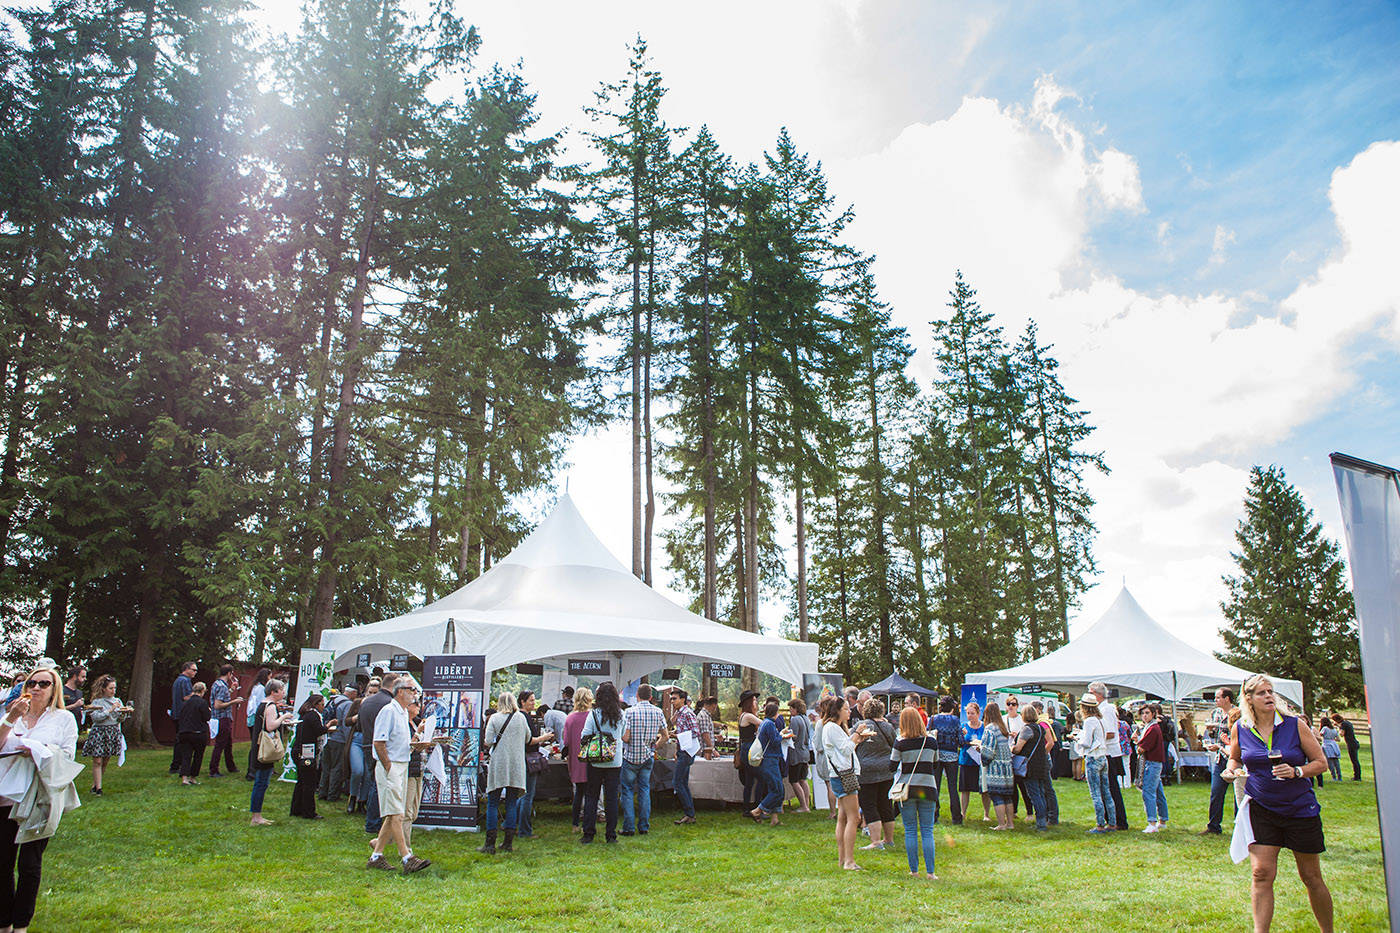 Feast of Fields set to take place at Snowdon House farm in North Saanich